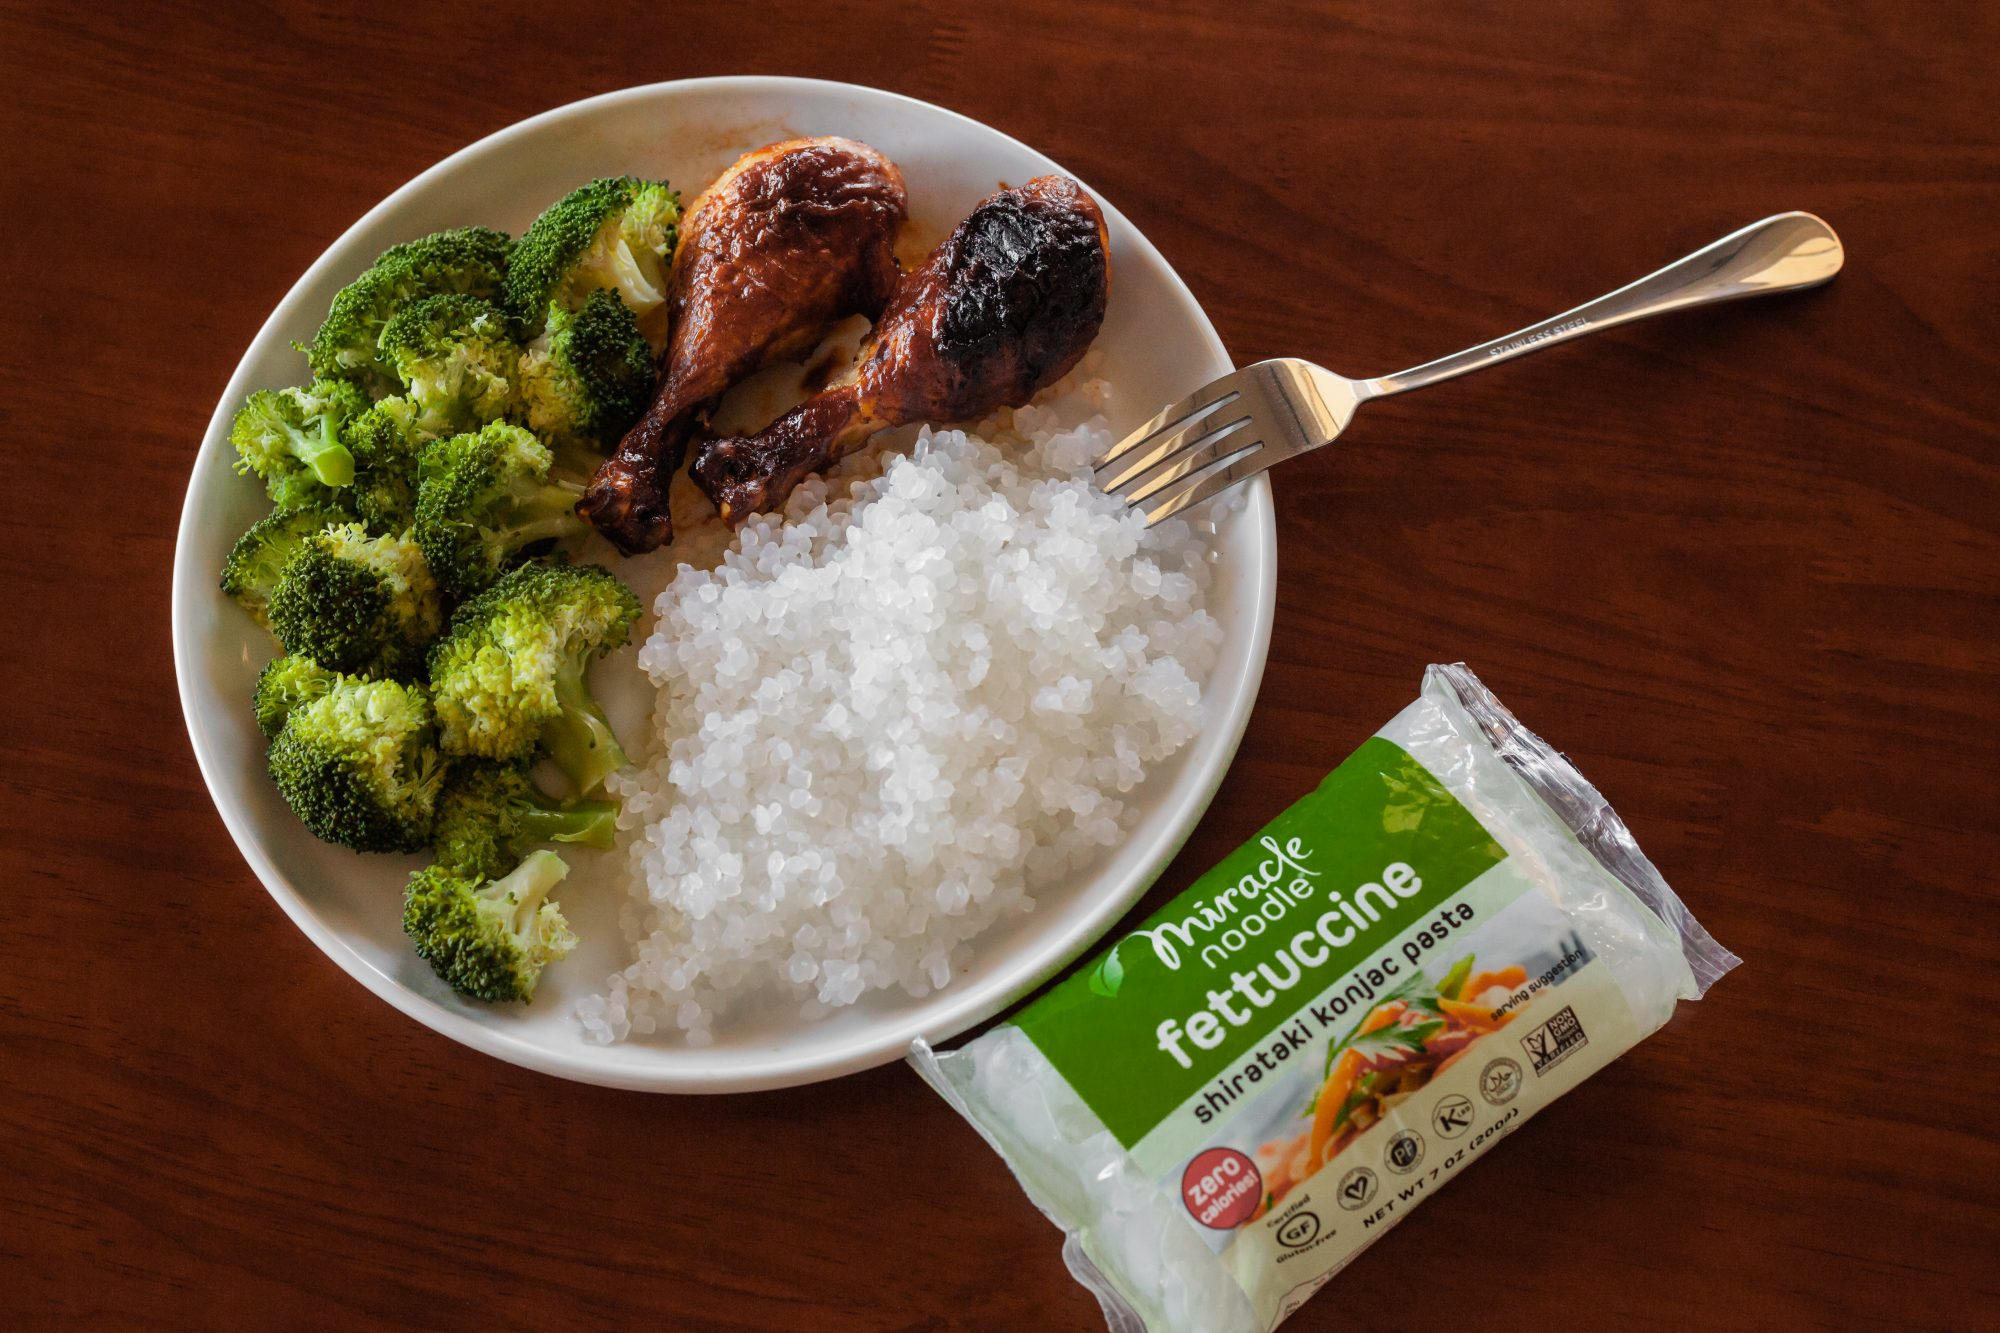 A plate of broccoli, chicken drumsticks and zero-calorie Miracle rice